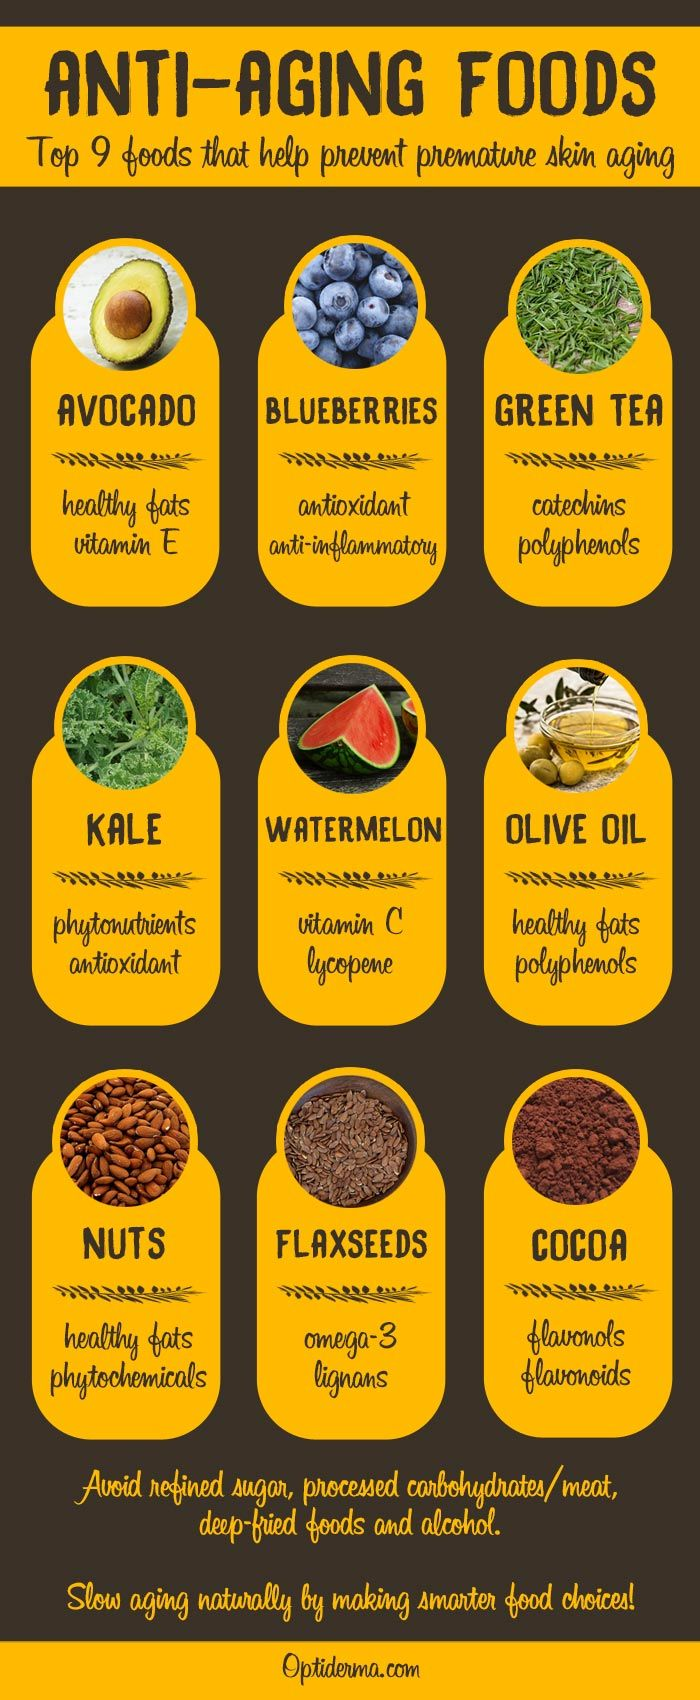 Nine Anti-Aging Foods.   Slow down skin aging naturally and fade wrinkles by making smarter food choices. Avocado, blueberries, green tea, kale, watermelon, olive oil, nuts, flaxseeds and cocoa are great choices. Follow a diet rich in antioxidants.